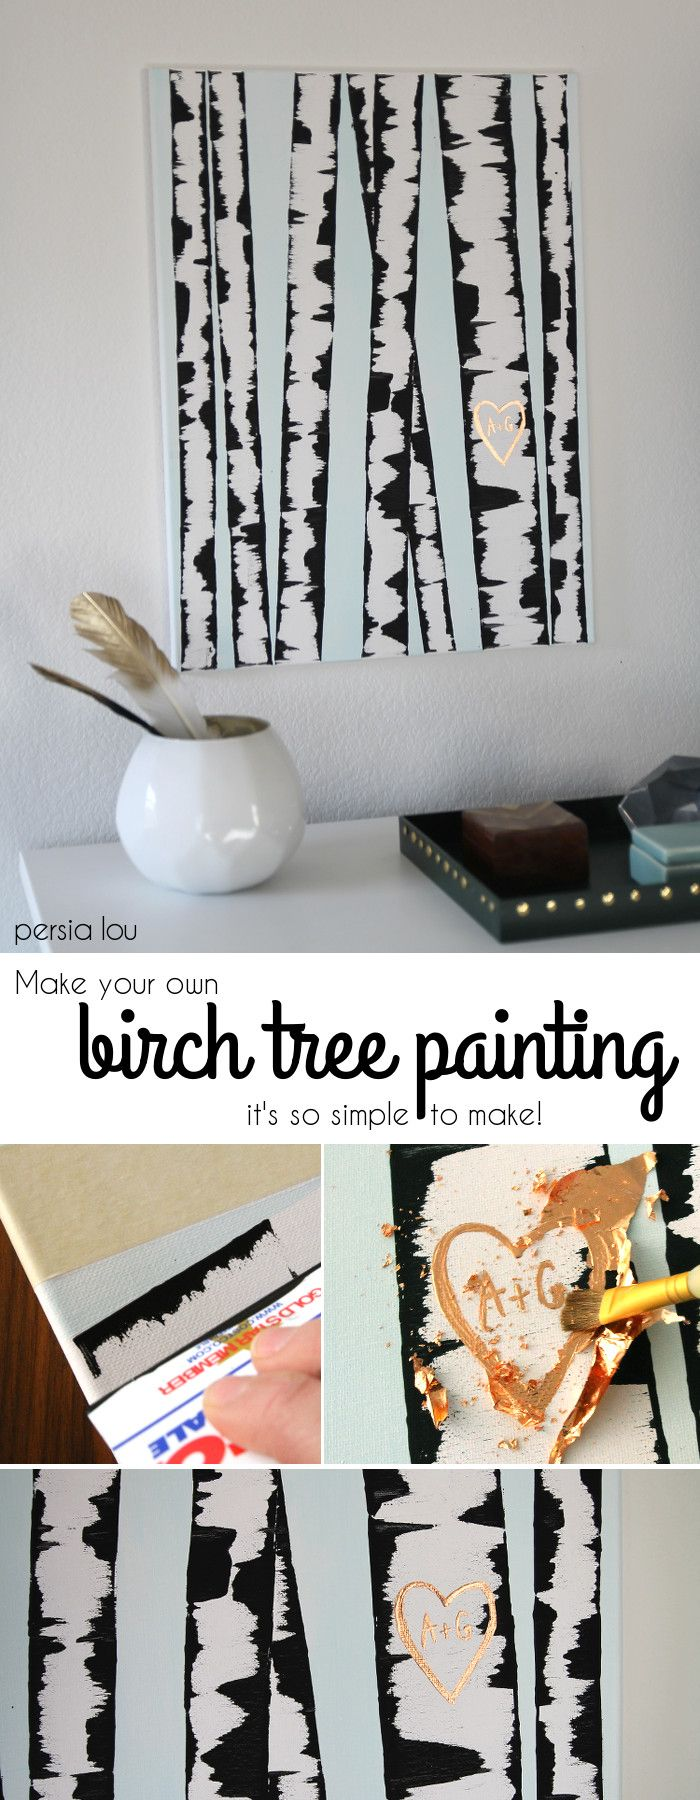 Design Diy Art best 25 diy wall art ideas on pinterest hexagon shelf make birch tree art